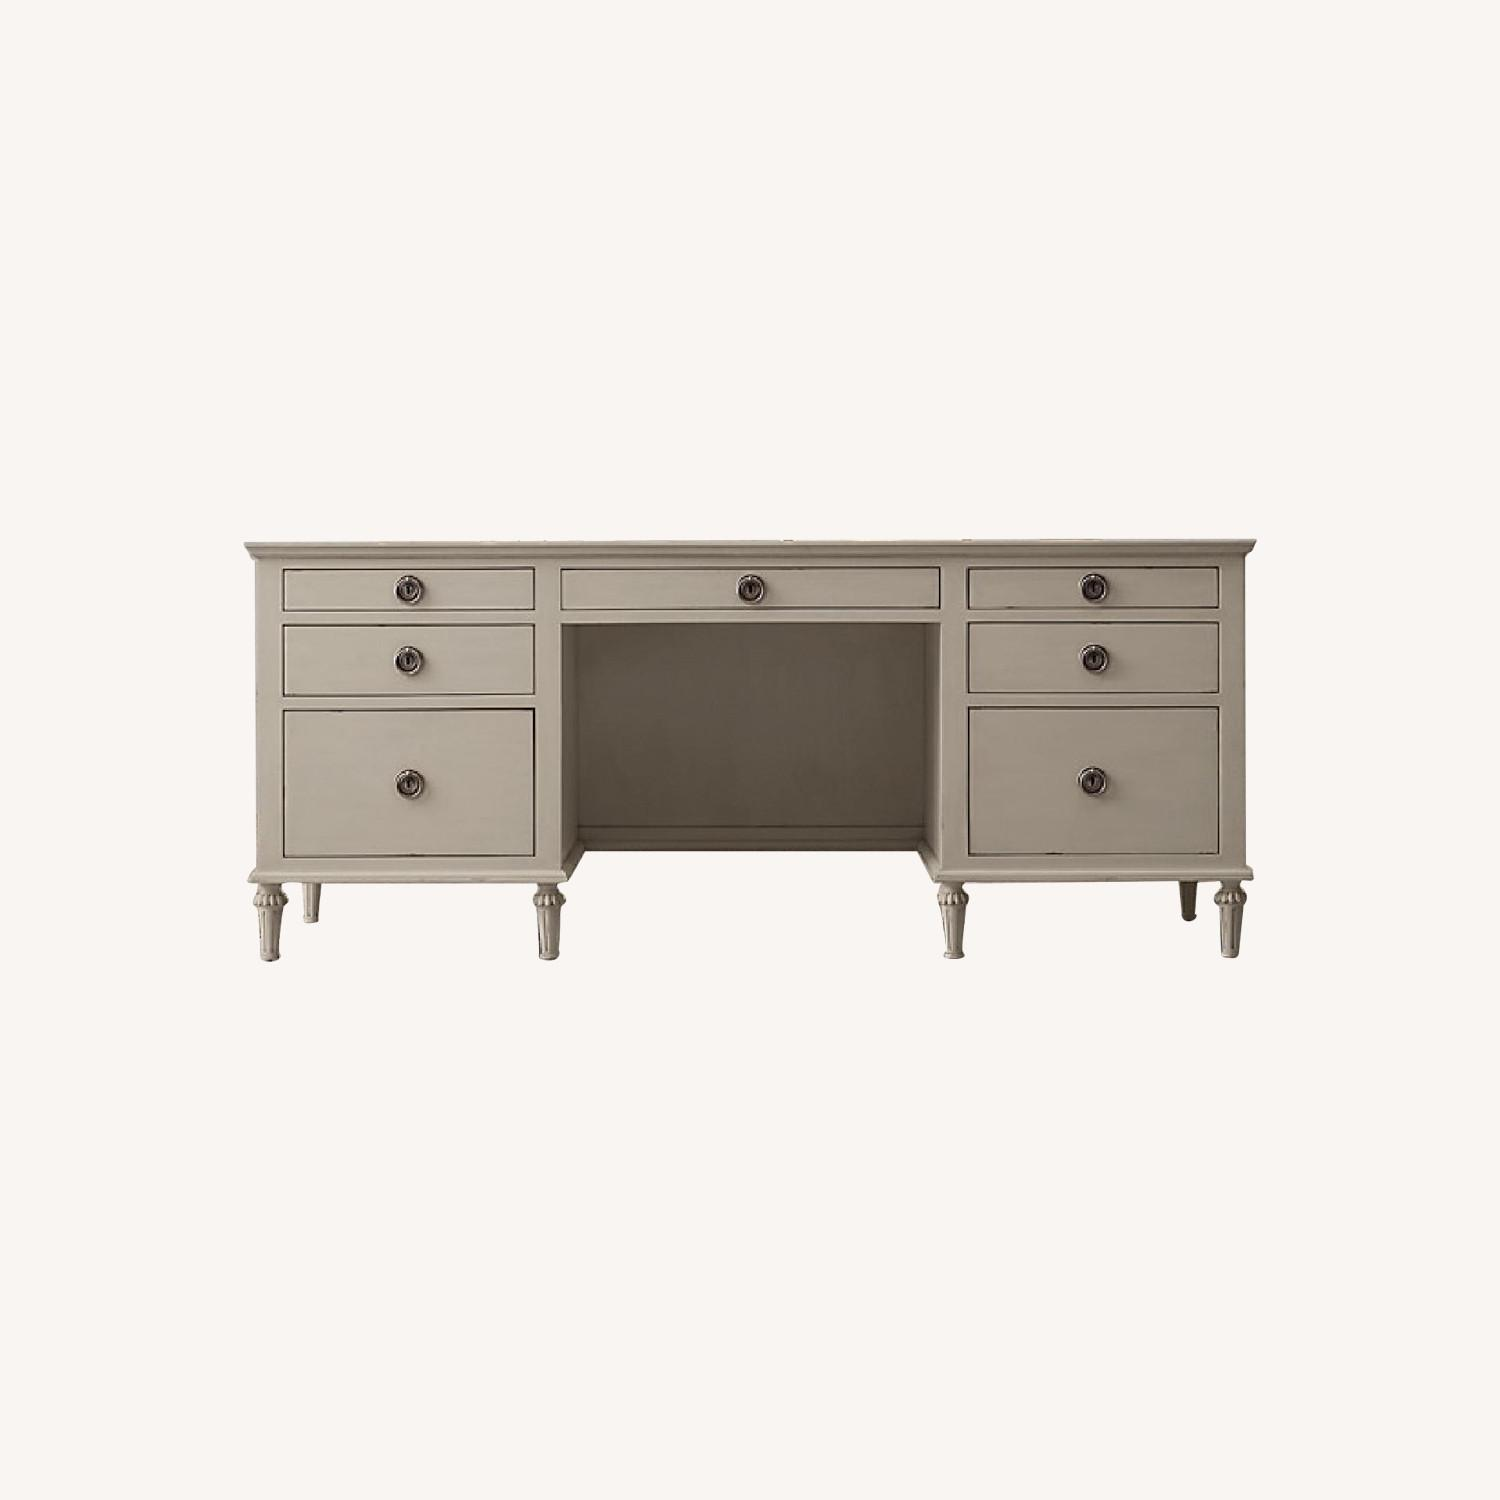 "Restoration Hardware Maison 76"" Desk - Antiqued Taupe - image-0"